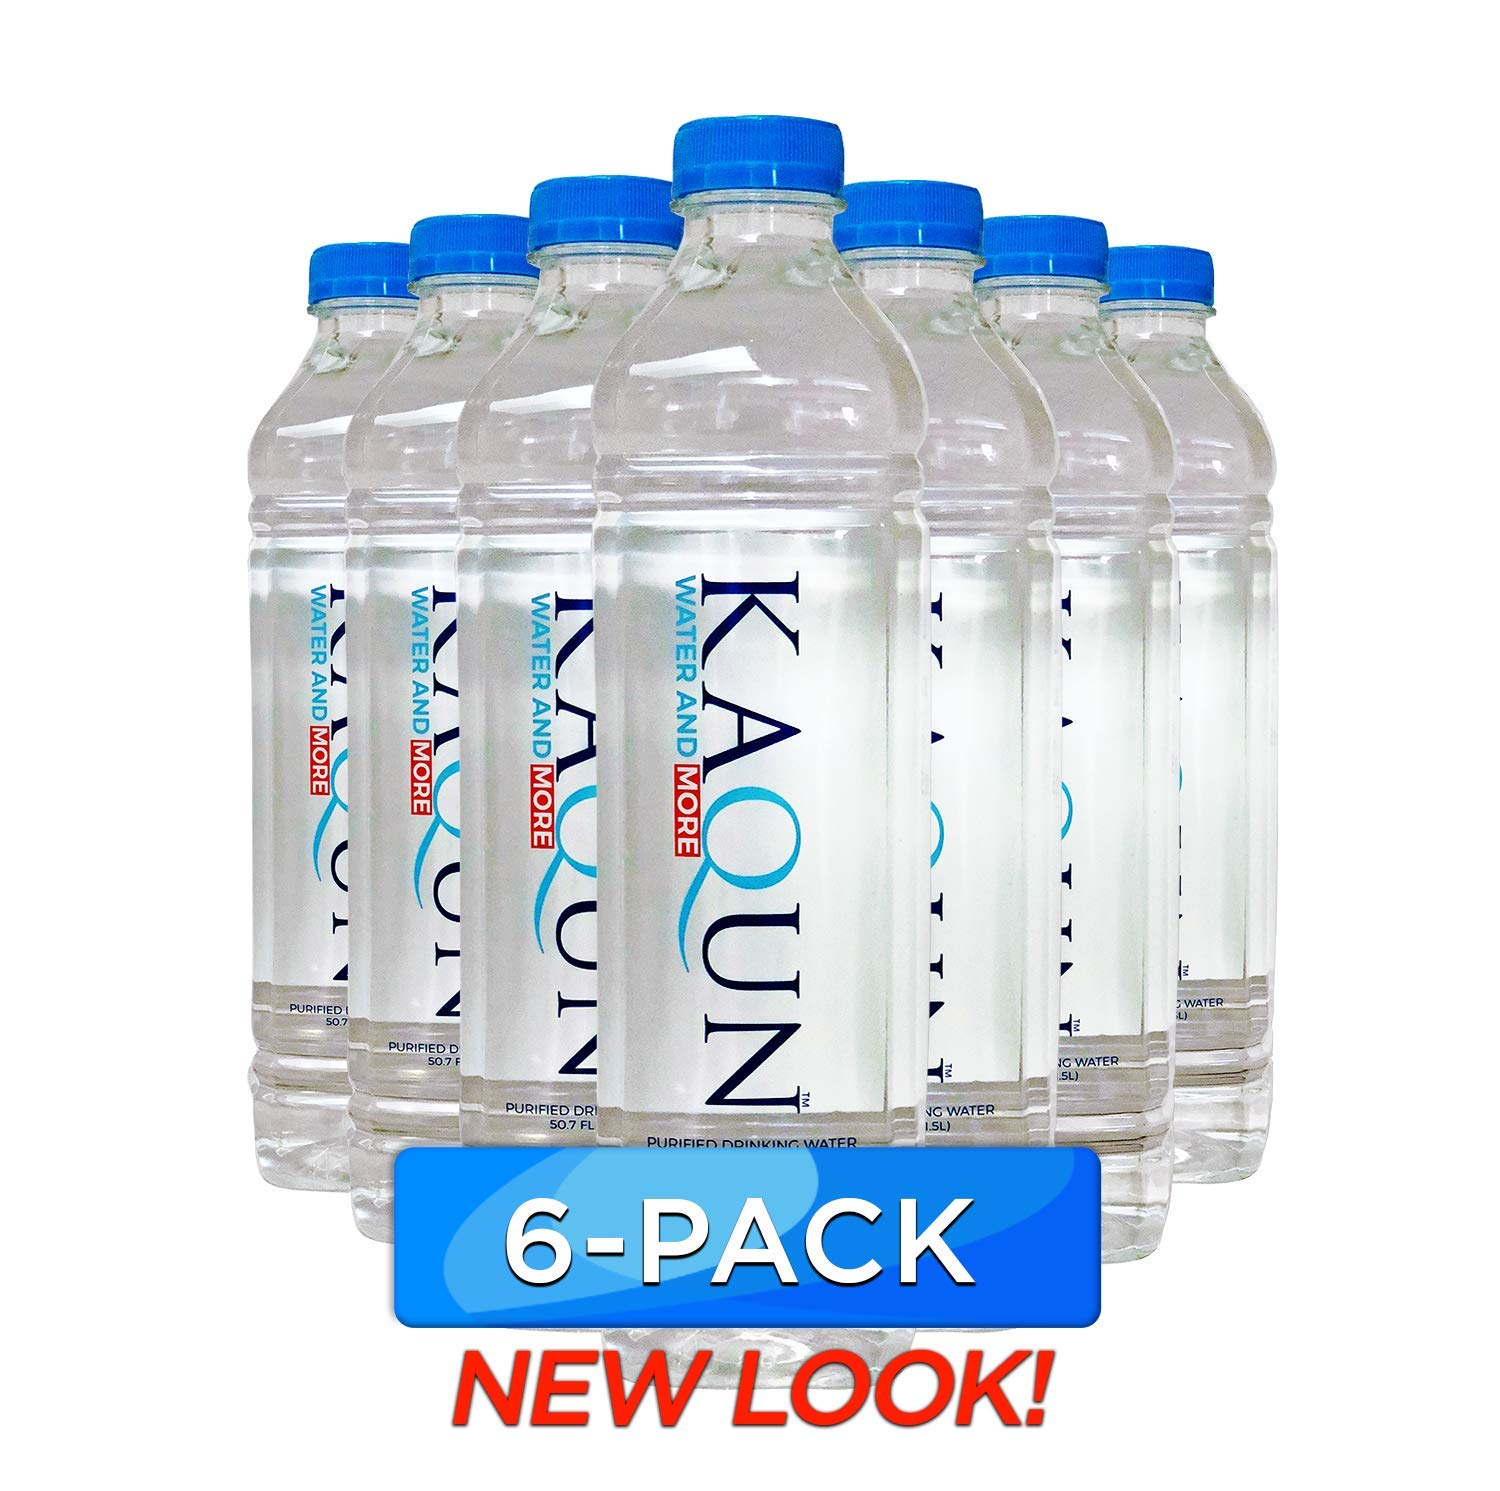 KAQUN Water 6-Pack, Oxygenated & Refreshing, Oxygen Infused Bottled Drinking Water, Chemical Free, Detox, for Kaqun Therapy, Authorized Retailer